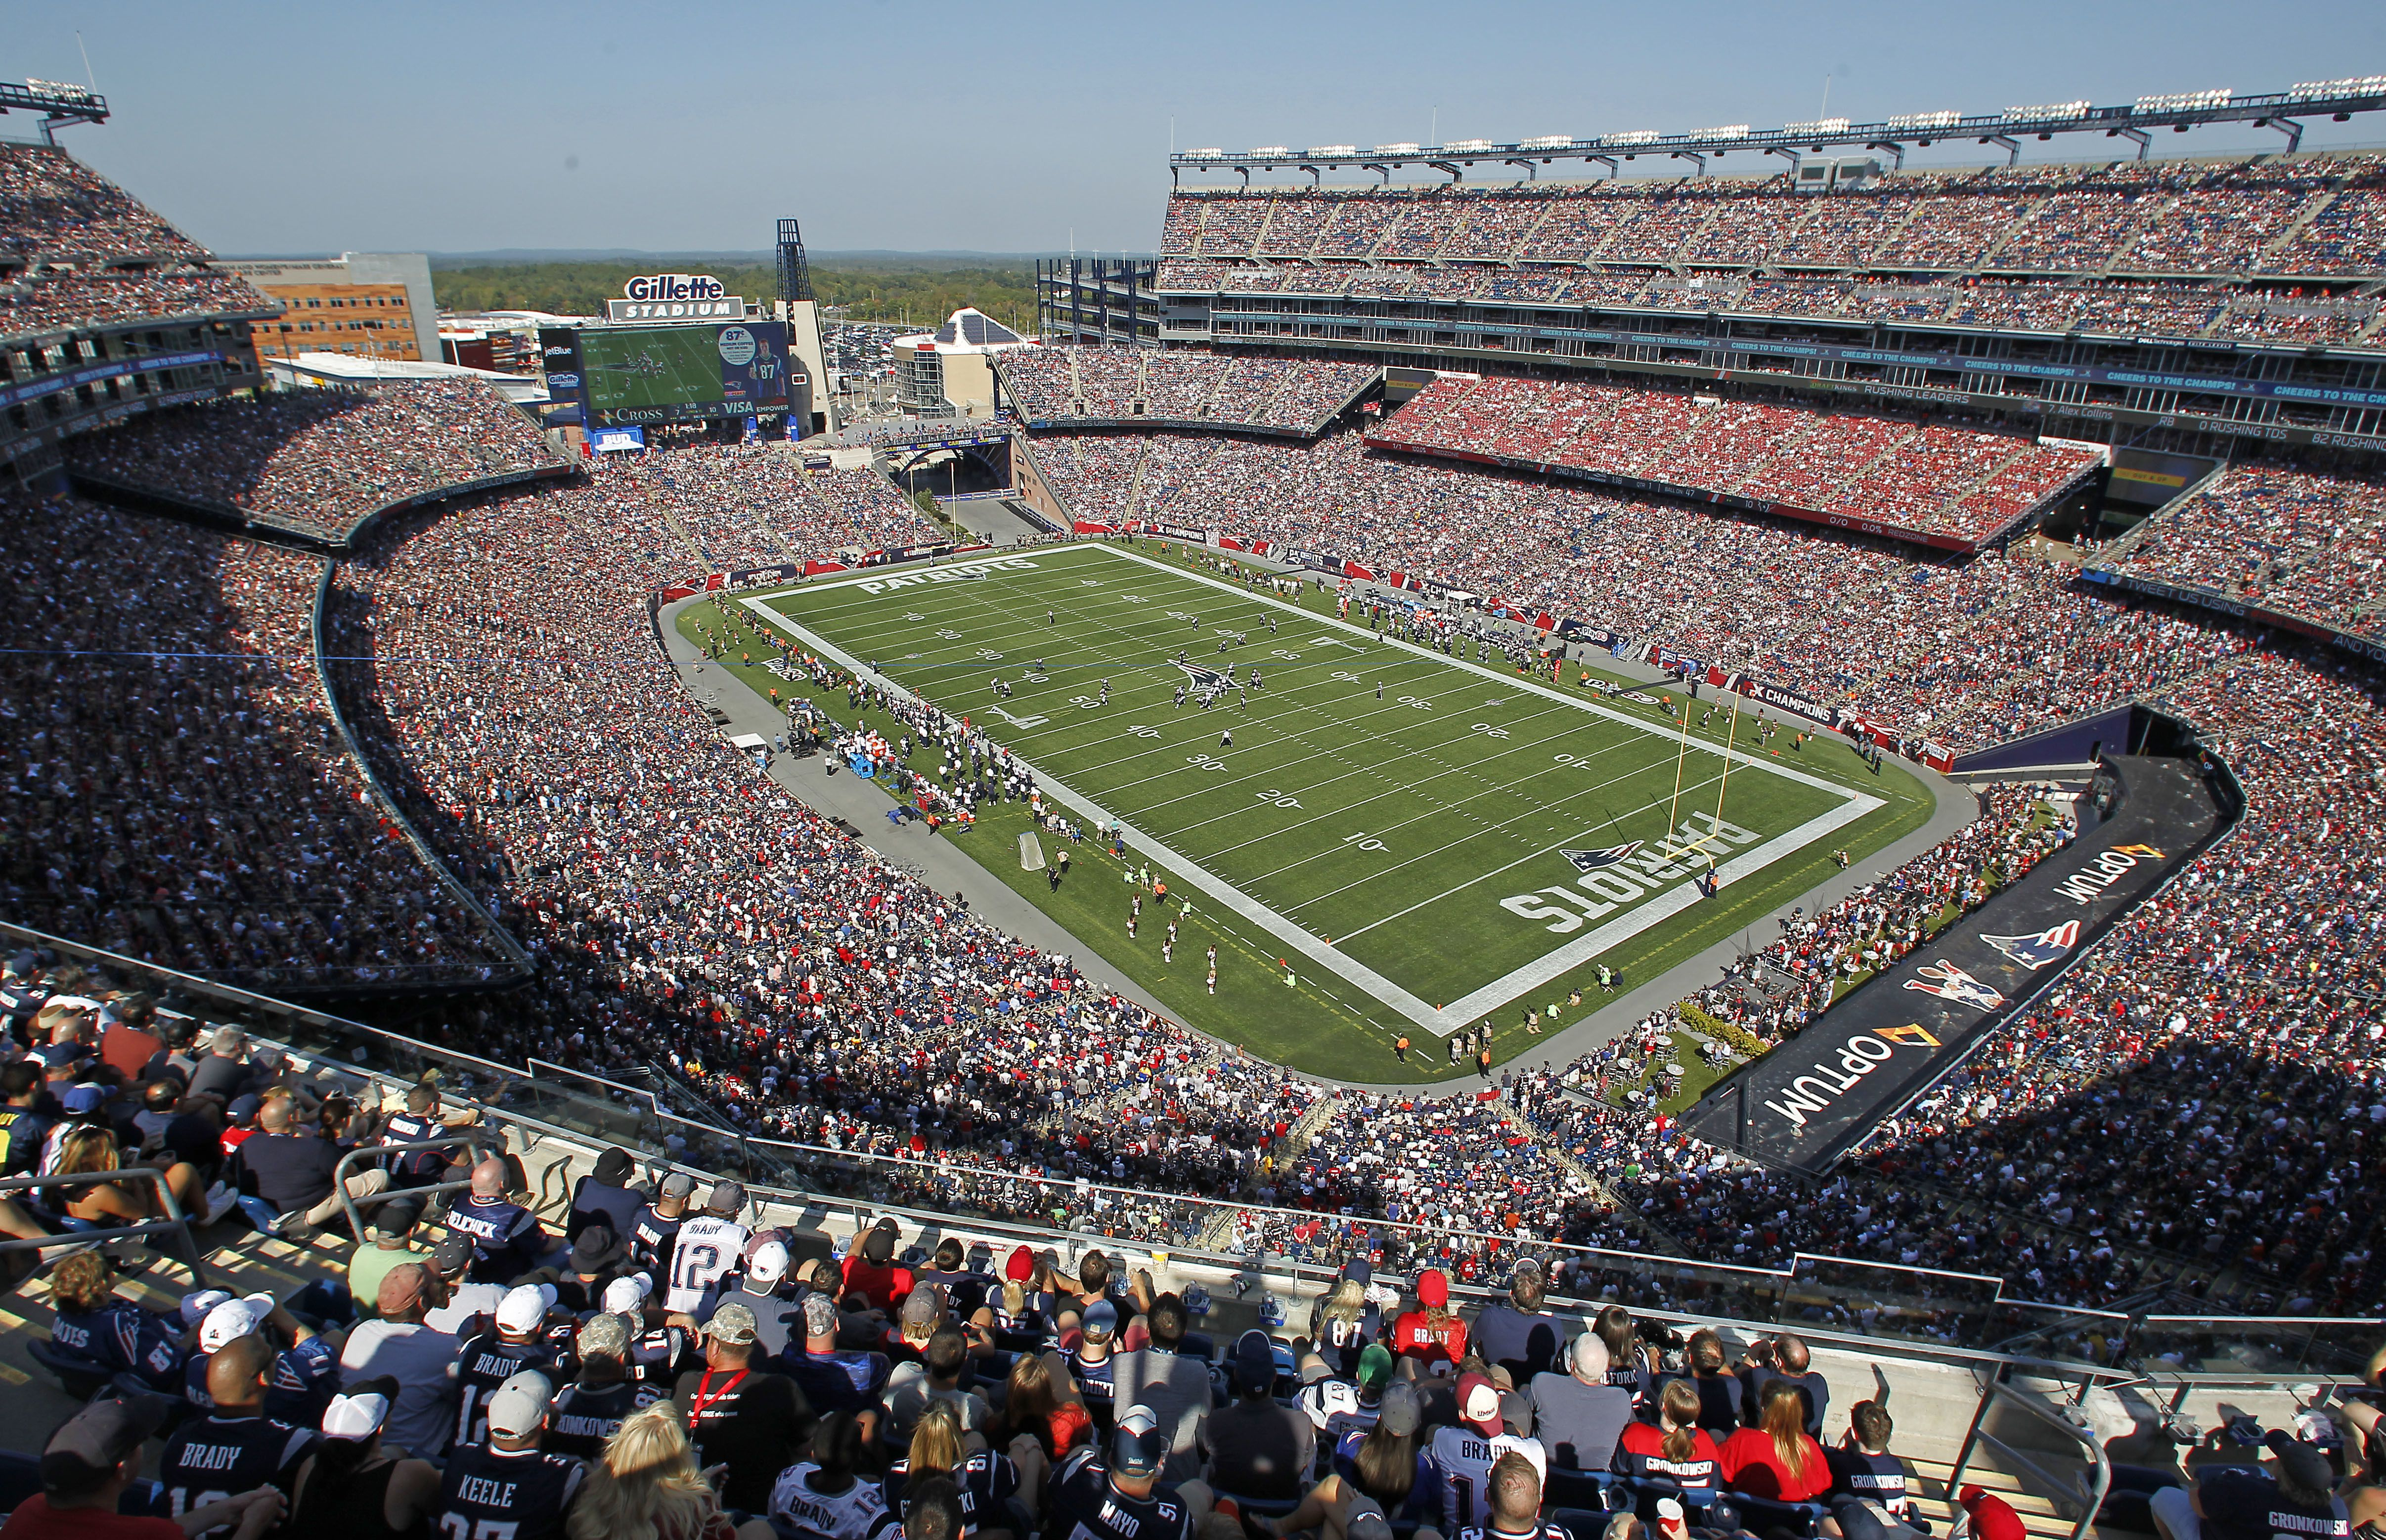 Saturday S Patriots Bills Game Won T Be On Local Tv In Much Of Western Mass New England Here S How To Watch It Masslive Com